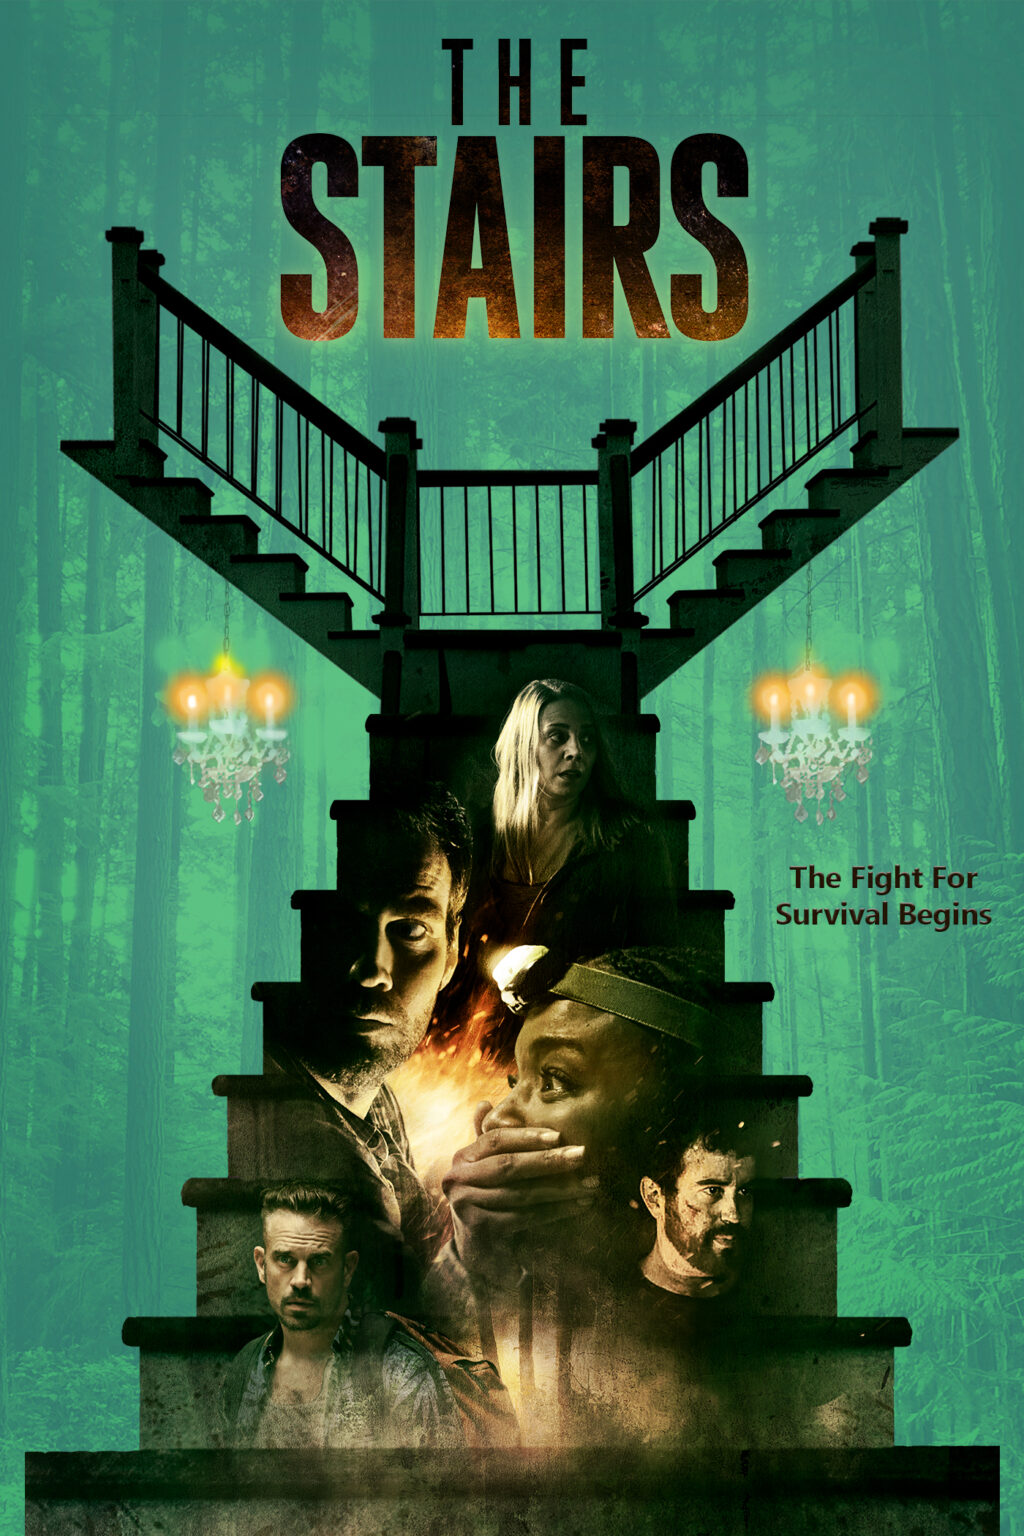 The Stairs 1400x2100 1 1024x1536 - Dread Central to Host Free LA Screening of THE STAIRS with Stars on August 10th!